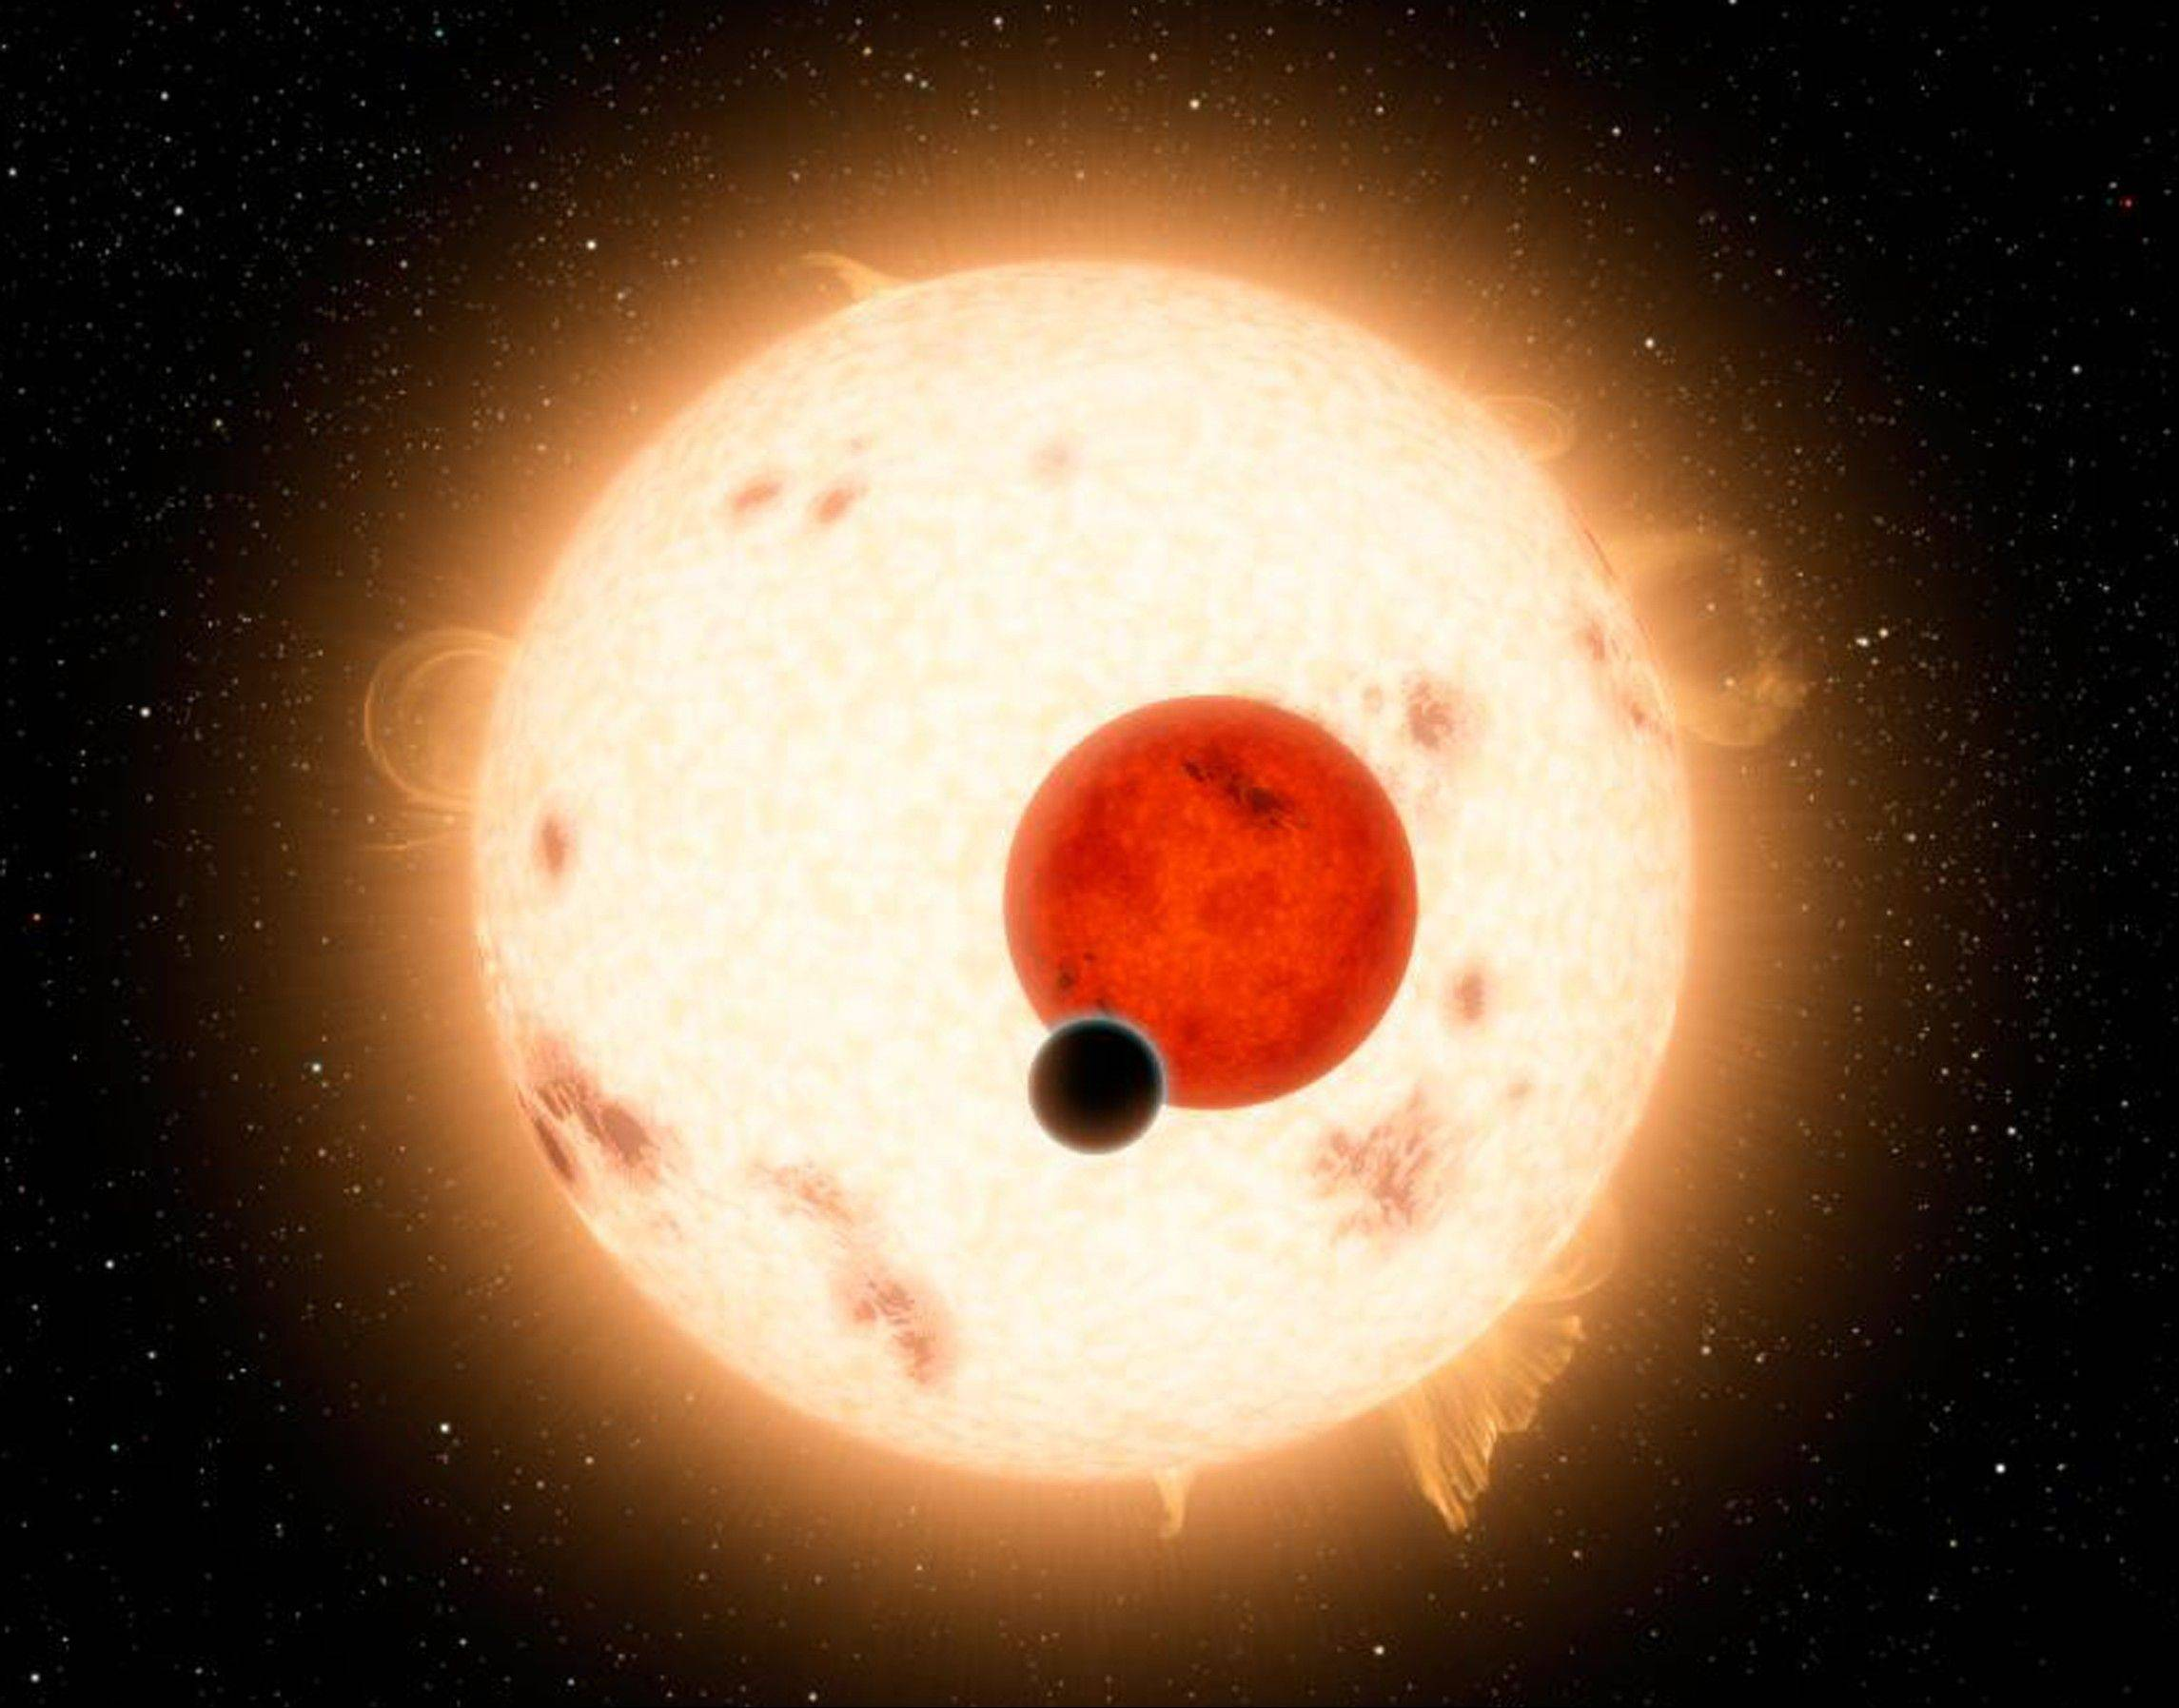 An artist�s depiction shows a discovery by NASA�s Kepler mission of a world where two suns set over the horizon instead of just one. The planet, called Kepler-16b, is the most �Tatooine-like� planet yet found in our galaxy and is depicted here with its two stars. Tatooine is the name of Luke Skywalker�s home world in the science fiction movie Star Wars.